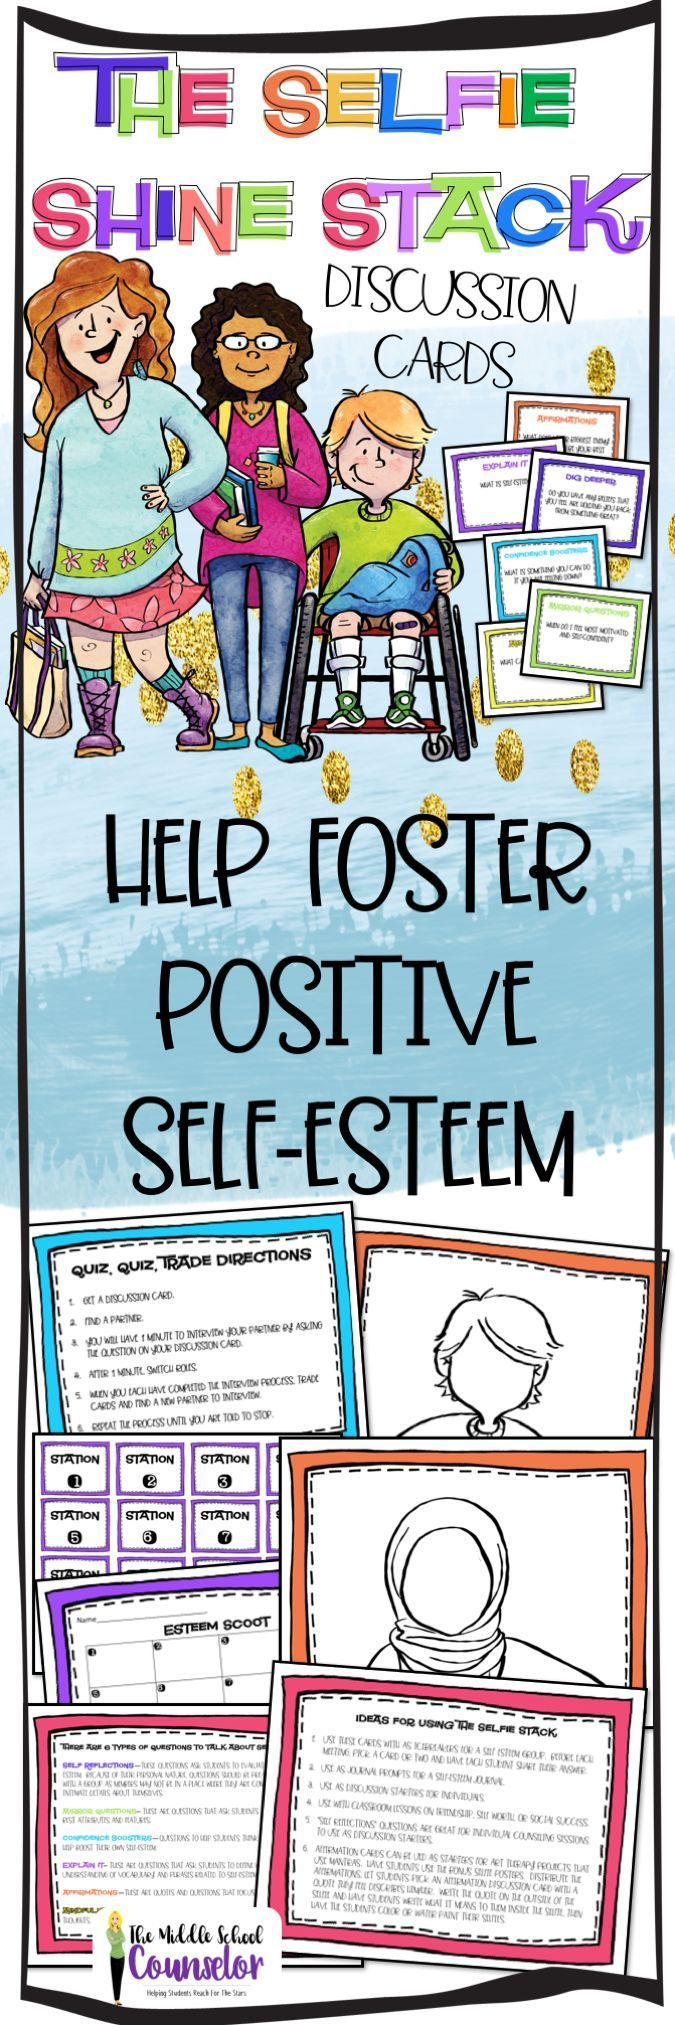 1345 best Elementary School Guidance Counselor images on Pinterest ...